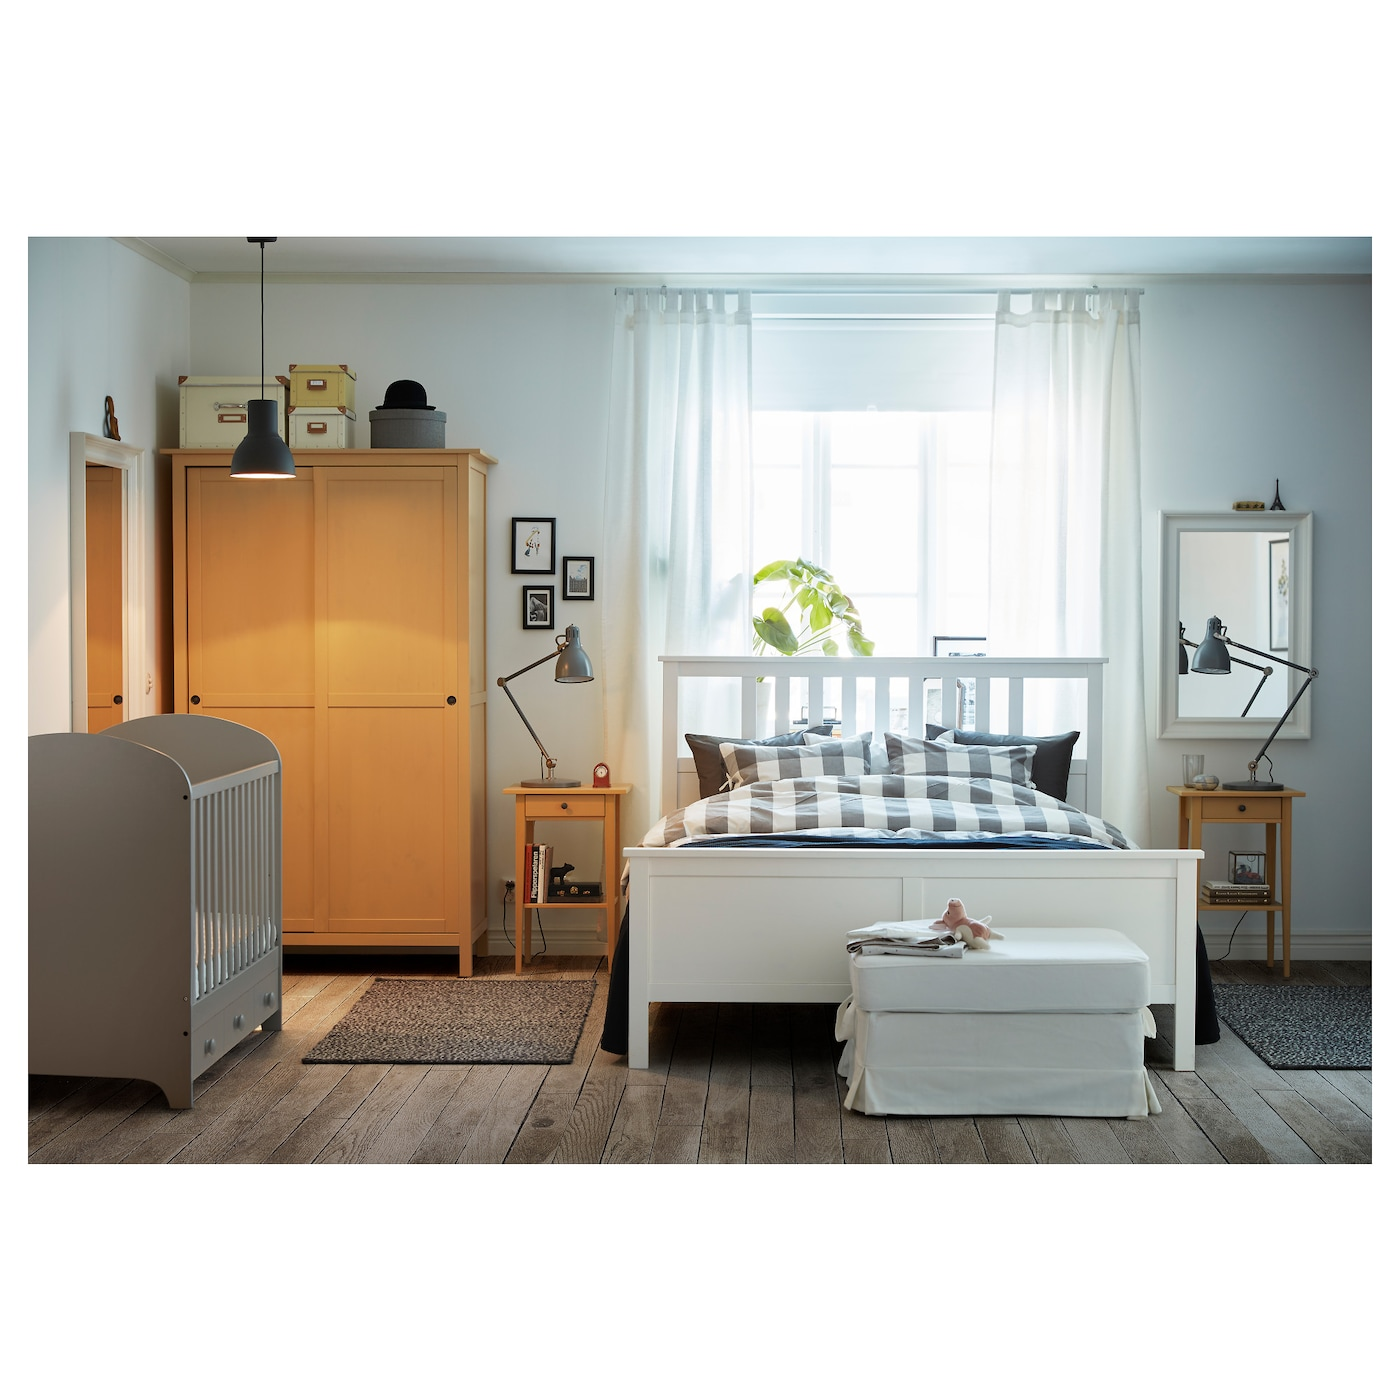 hemnes cadre de lit teint blanc lur y 160 x 200 cm ikea. Black Bedroom Furniture Sets. Home Design Ideas